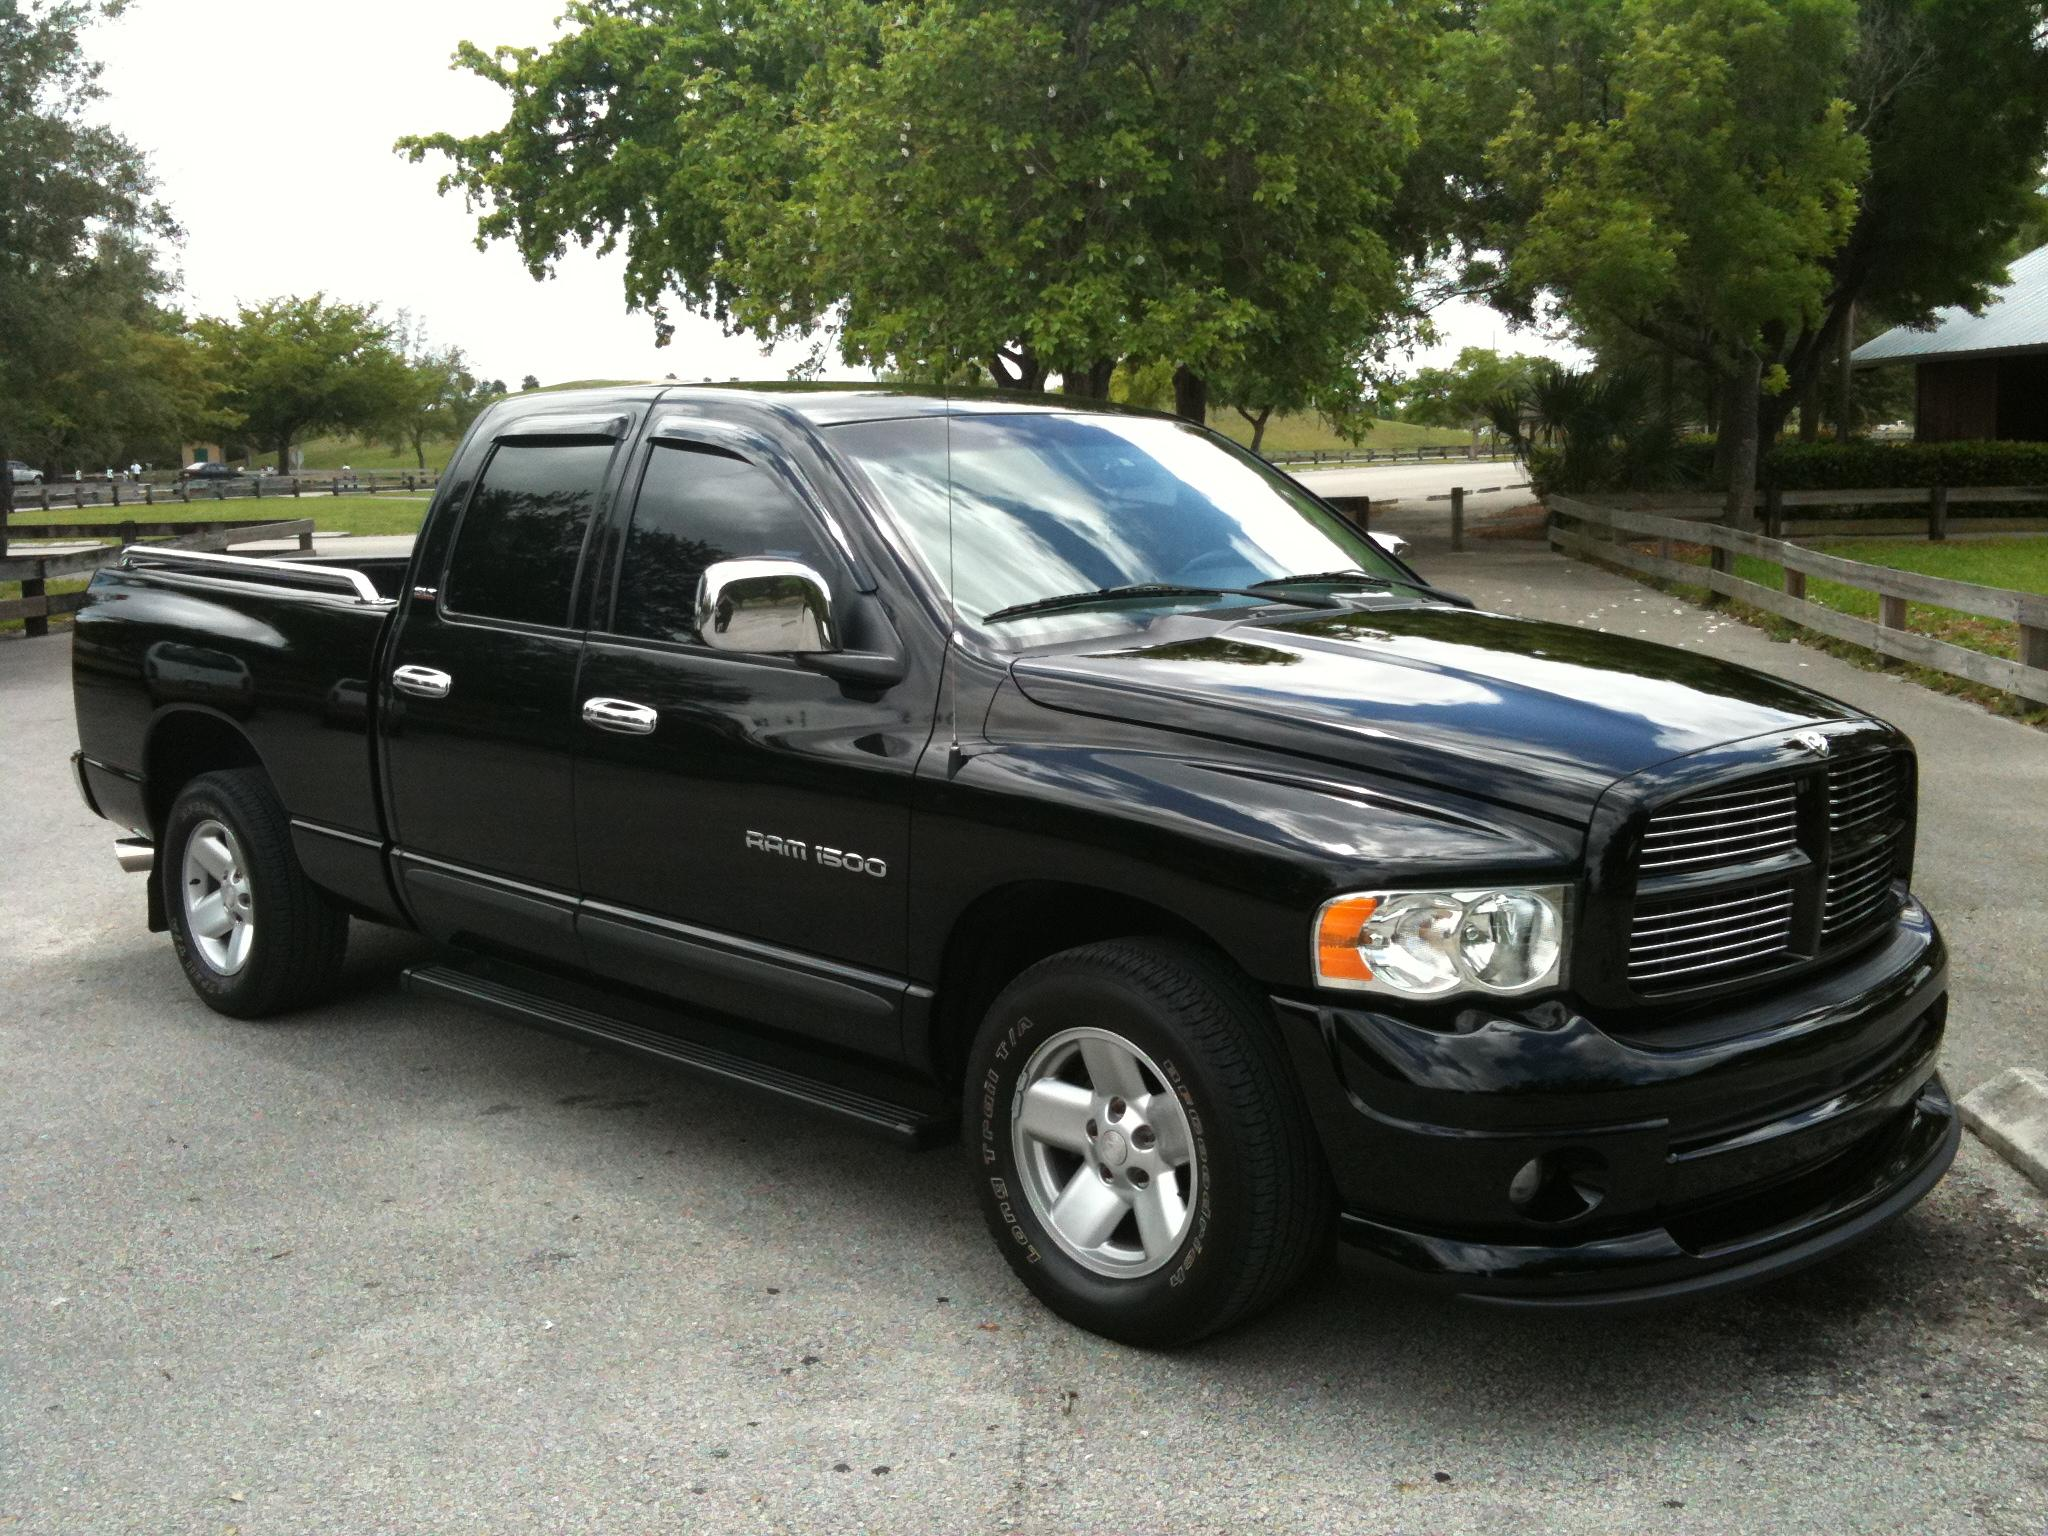 superiorstyles 2002 dodge ram 1500 quad cabshort bed specs photos modification info at cardomain. Black Bedroom Furniture Sets. Home Design Ideas